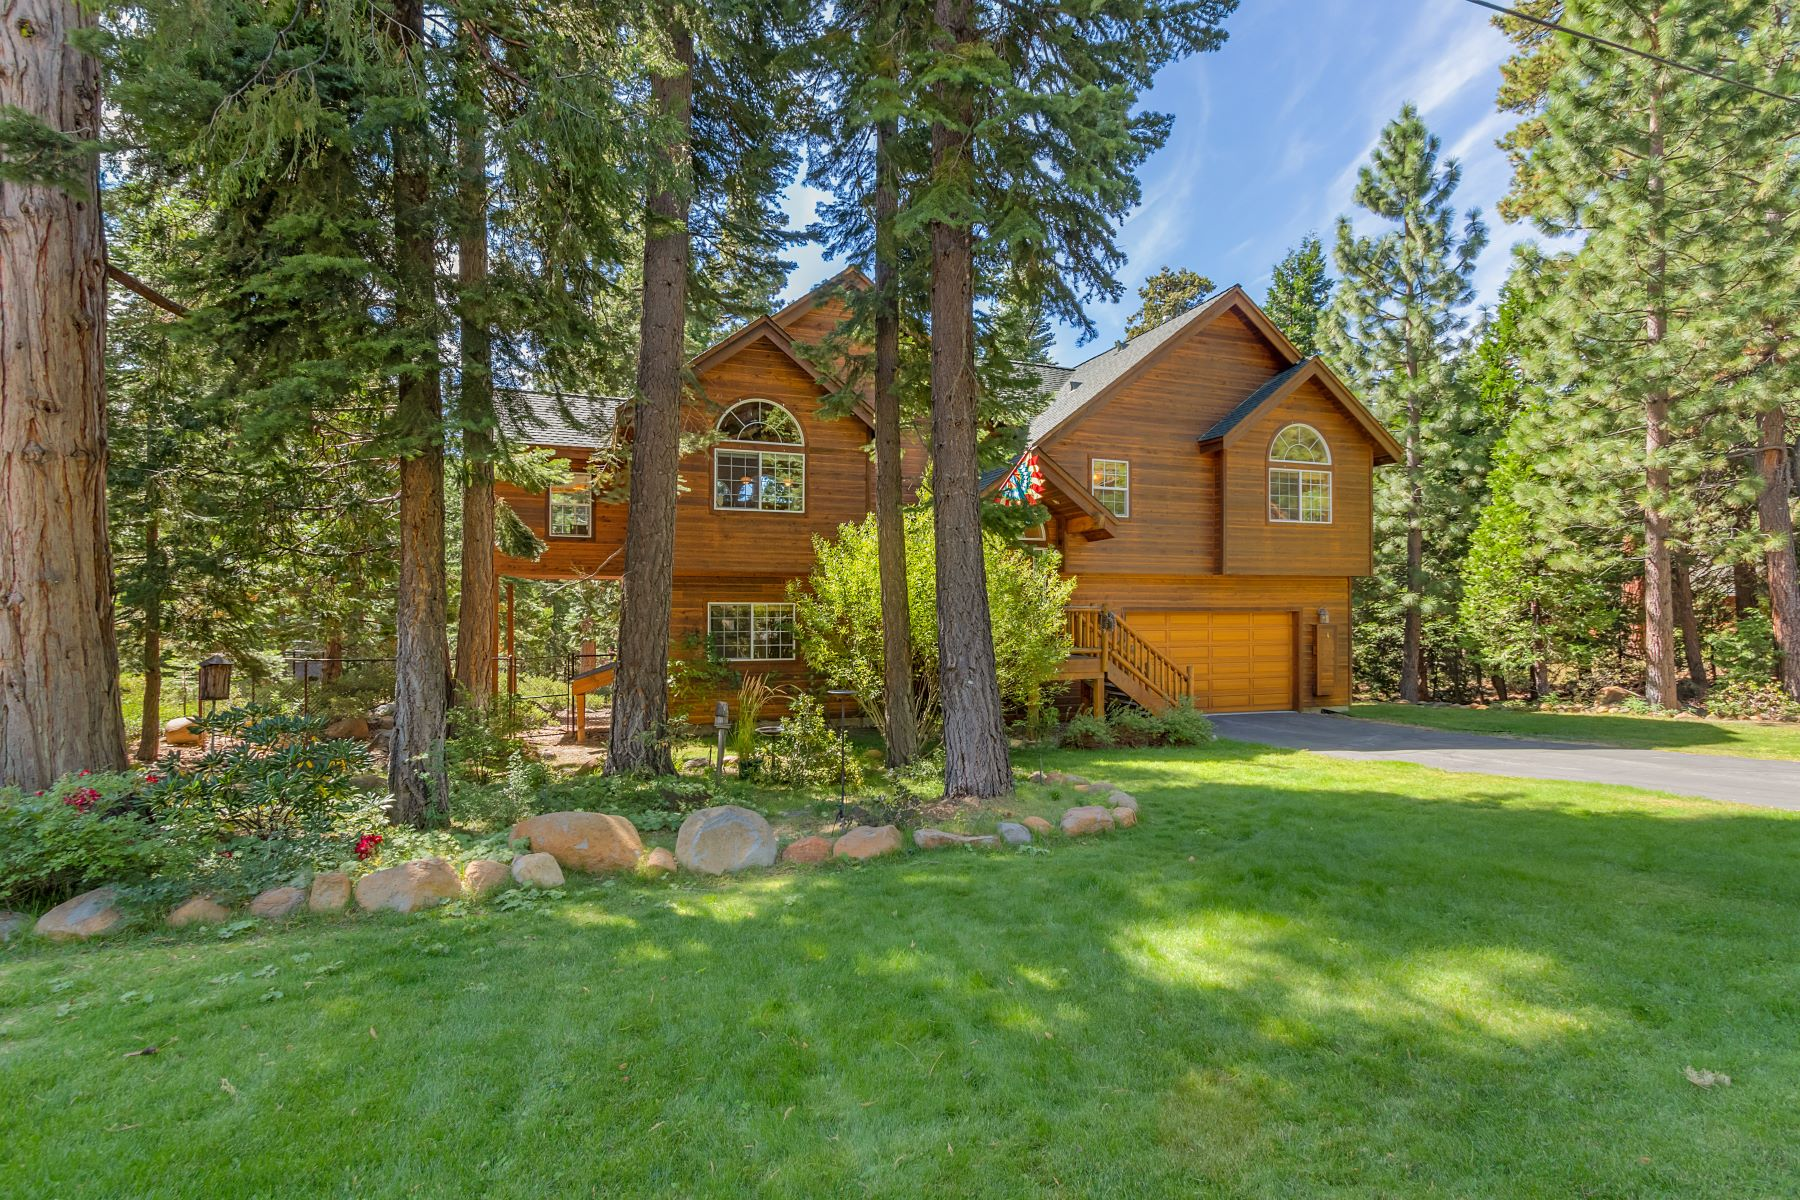 Additional photo for property listing at 6472 Donner Road, Tahoe Vista, CA 96148 6472 Donner Road Tahoe Vista, California 96148 United States